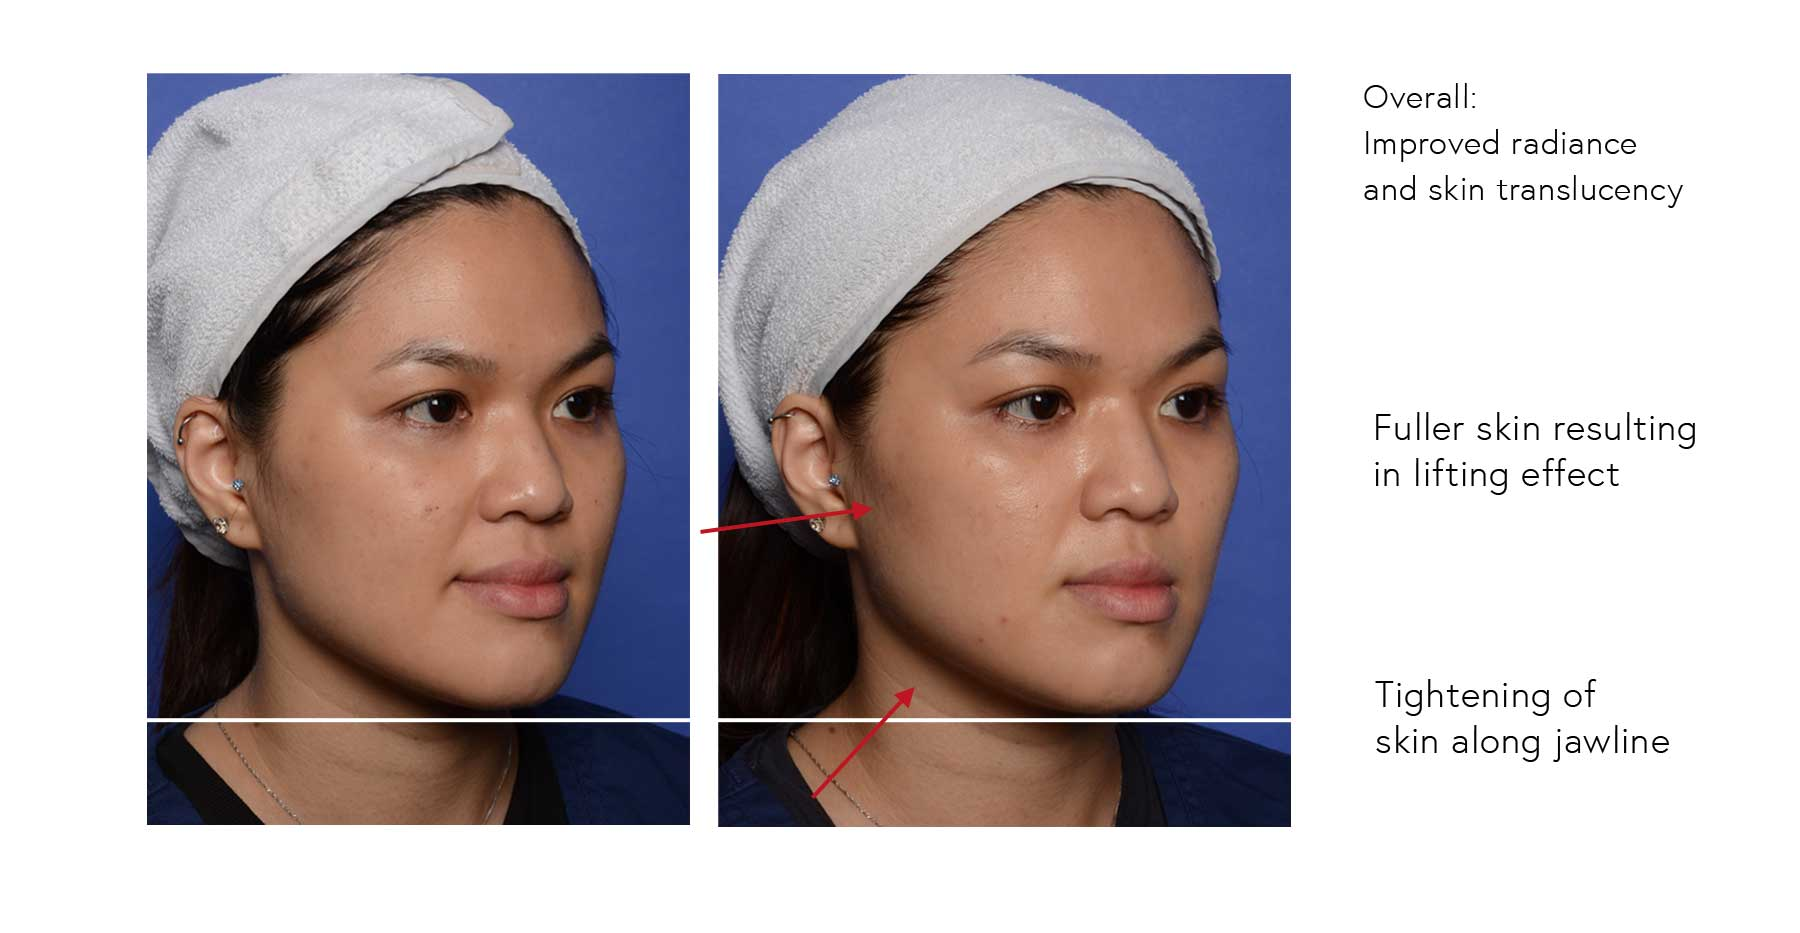 Fuller skin resulting in lifting effect; Tightening of skin along jawline; Overall improved radiance and skin translucency